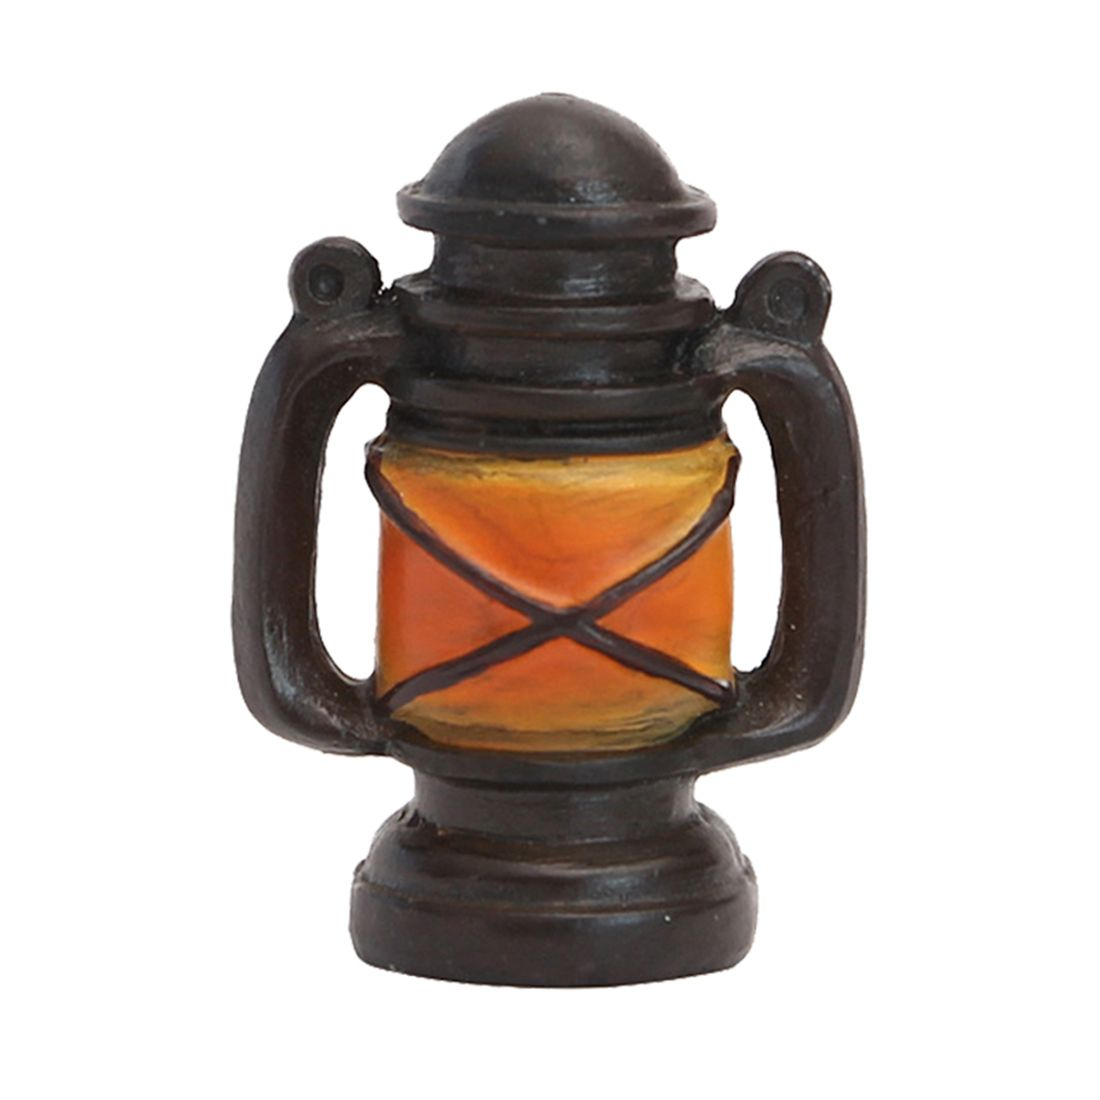 Vintage old creative resin mini kerosene lamp small ornaments desk jewelry Home decorations childrens gifts shop shooting pro